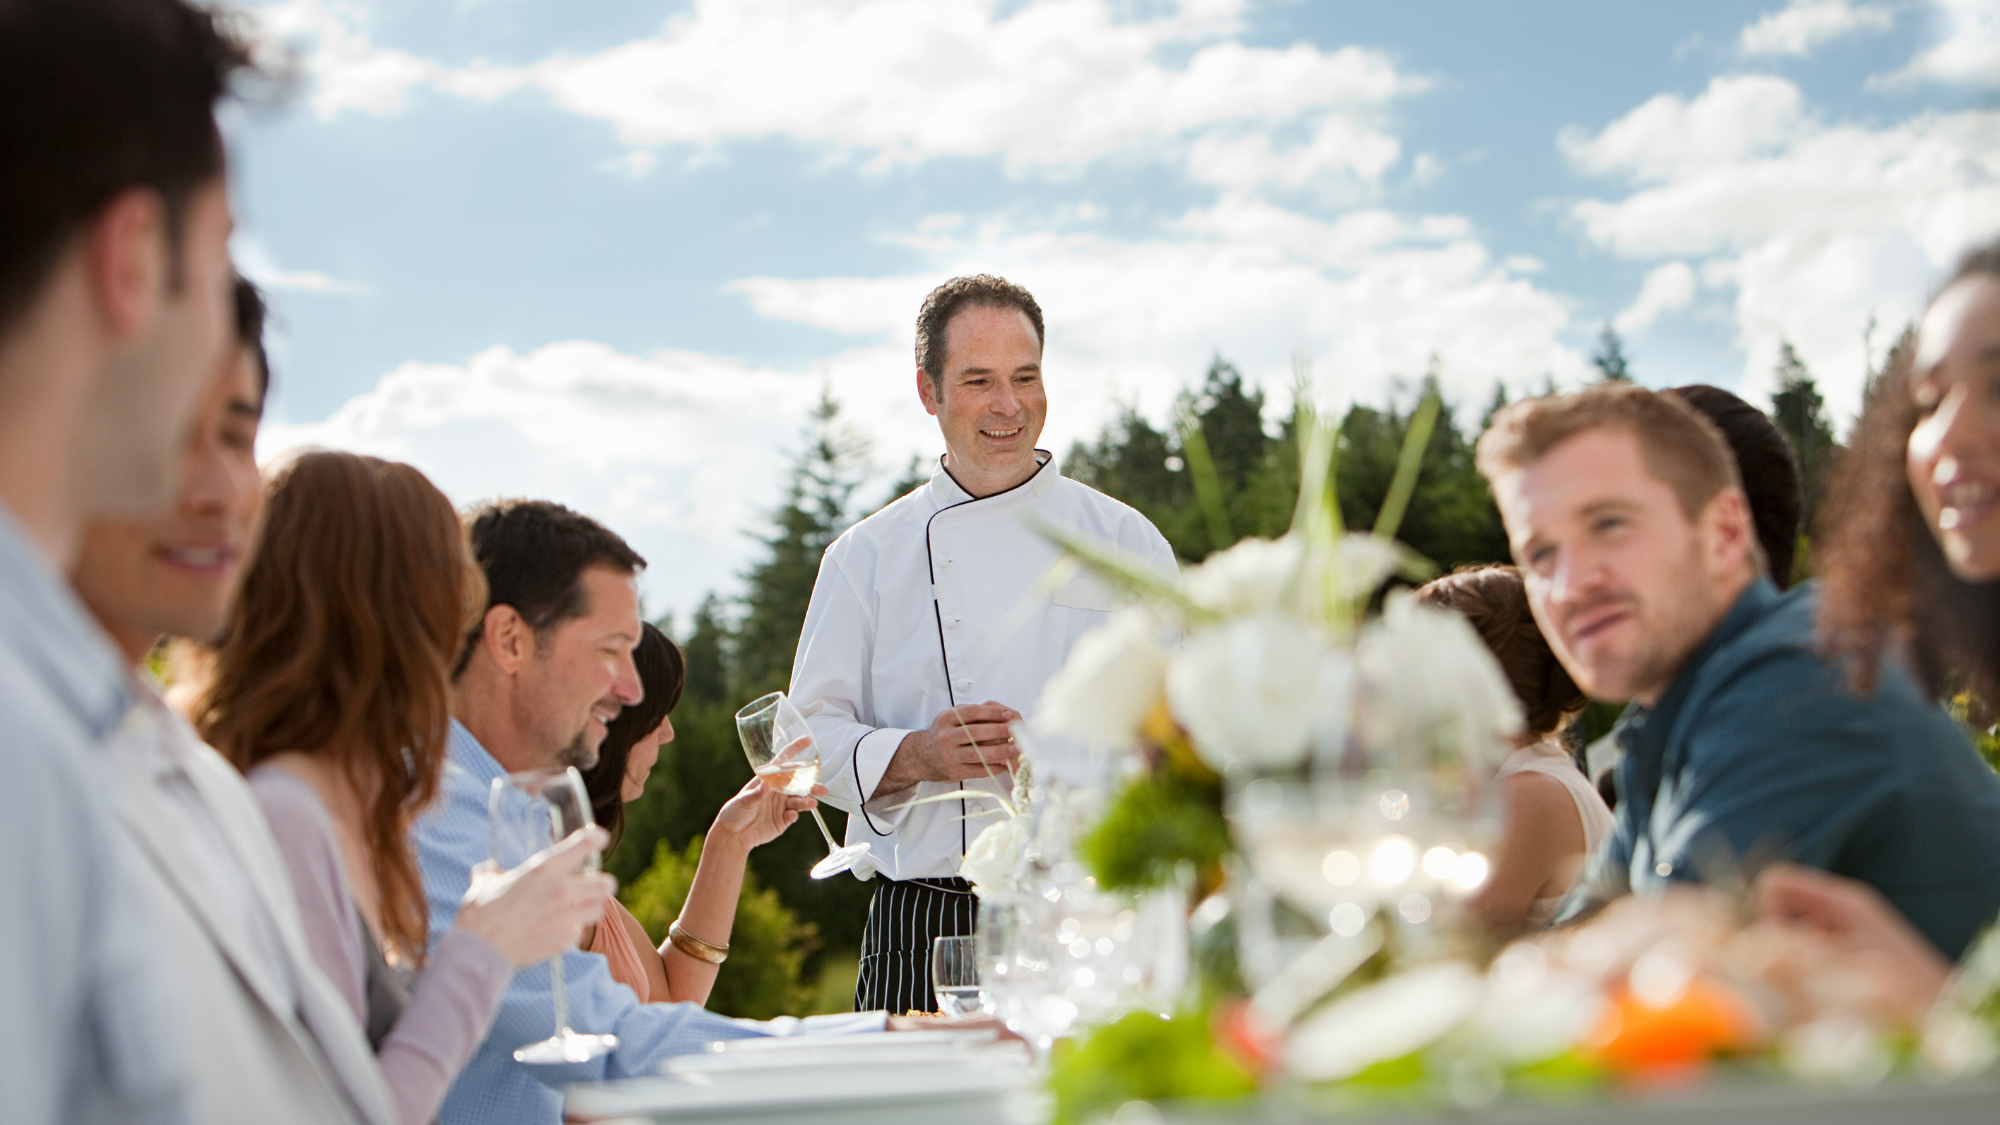 outdoor dinner party with chef